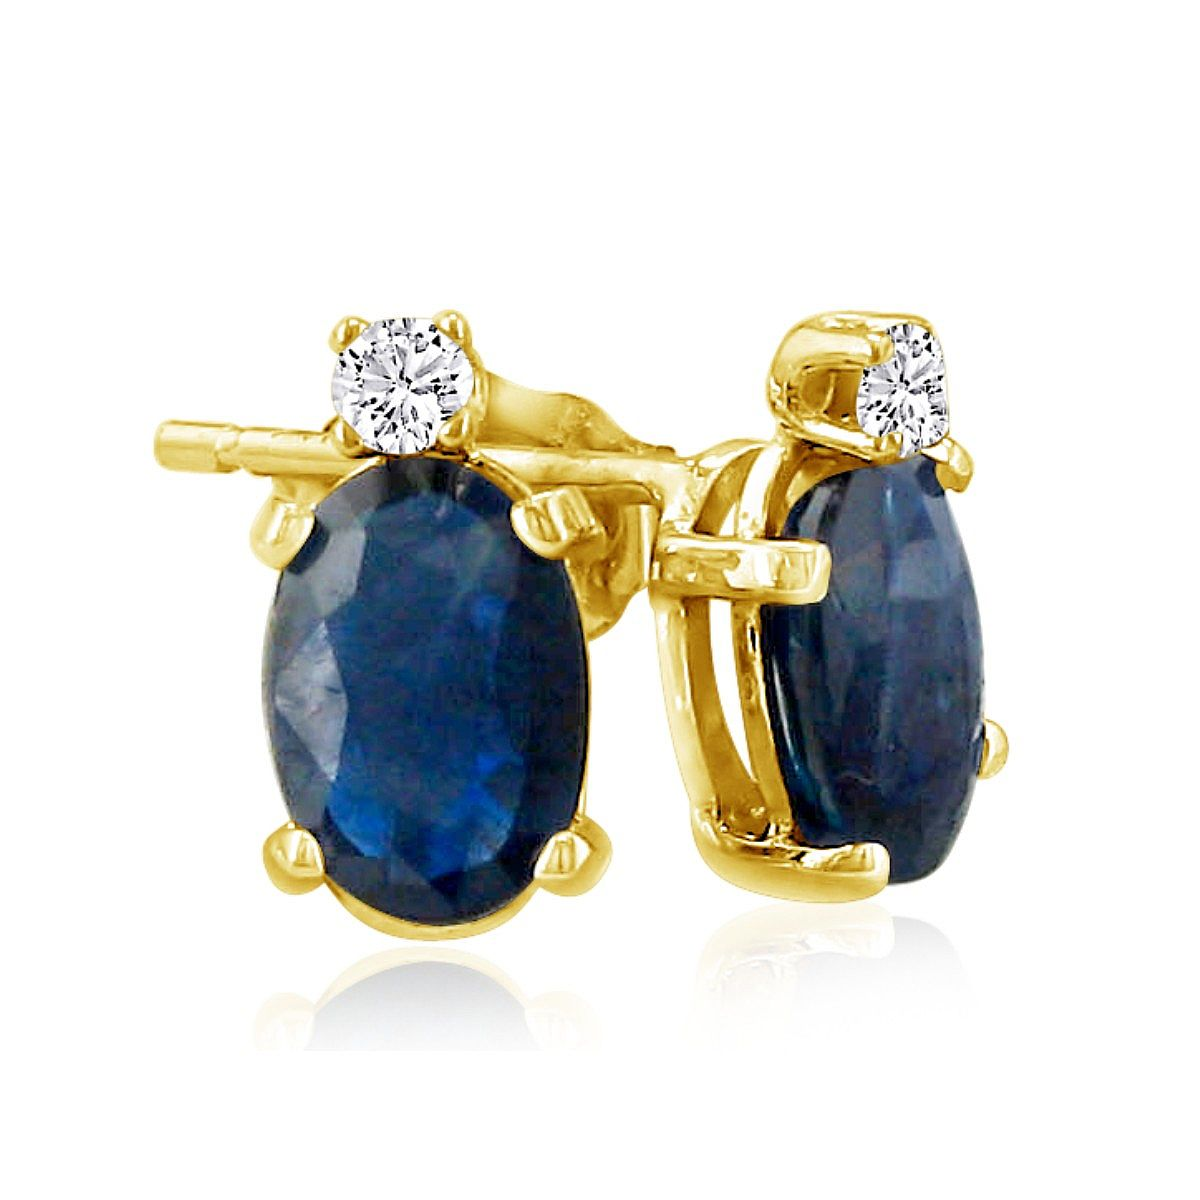 2 Carat Oval Sapphire and Diamond Earrings in 14k Yellow Gold